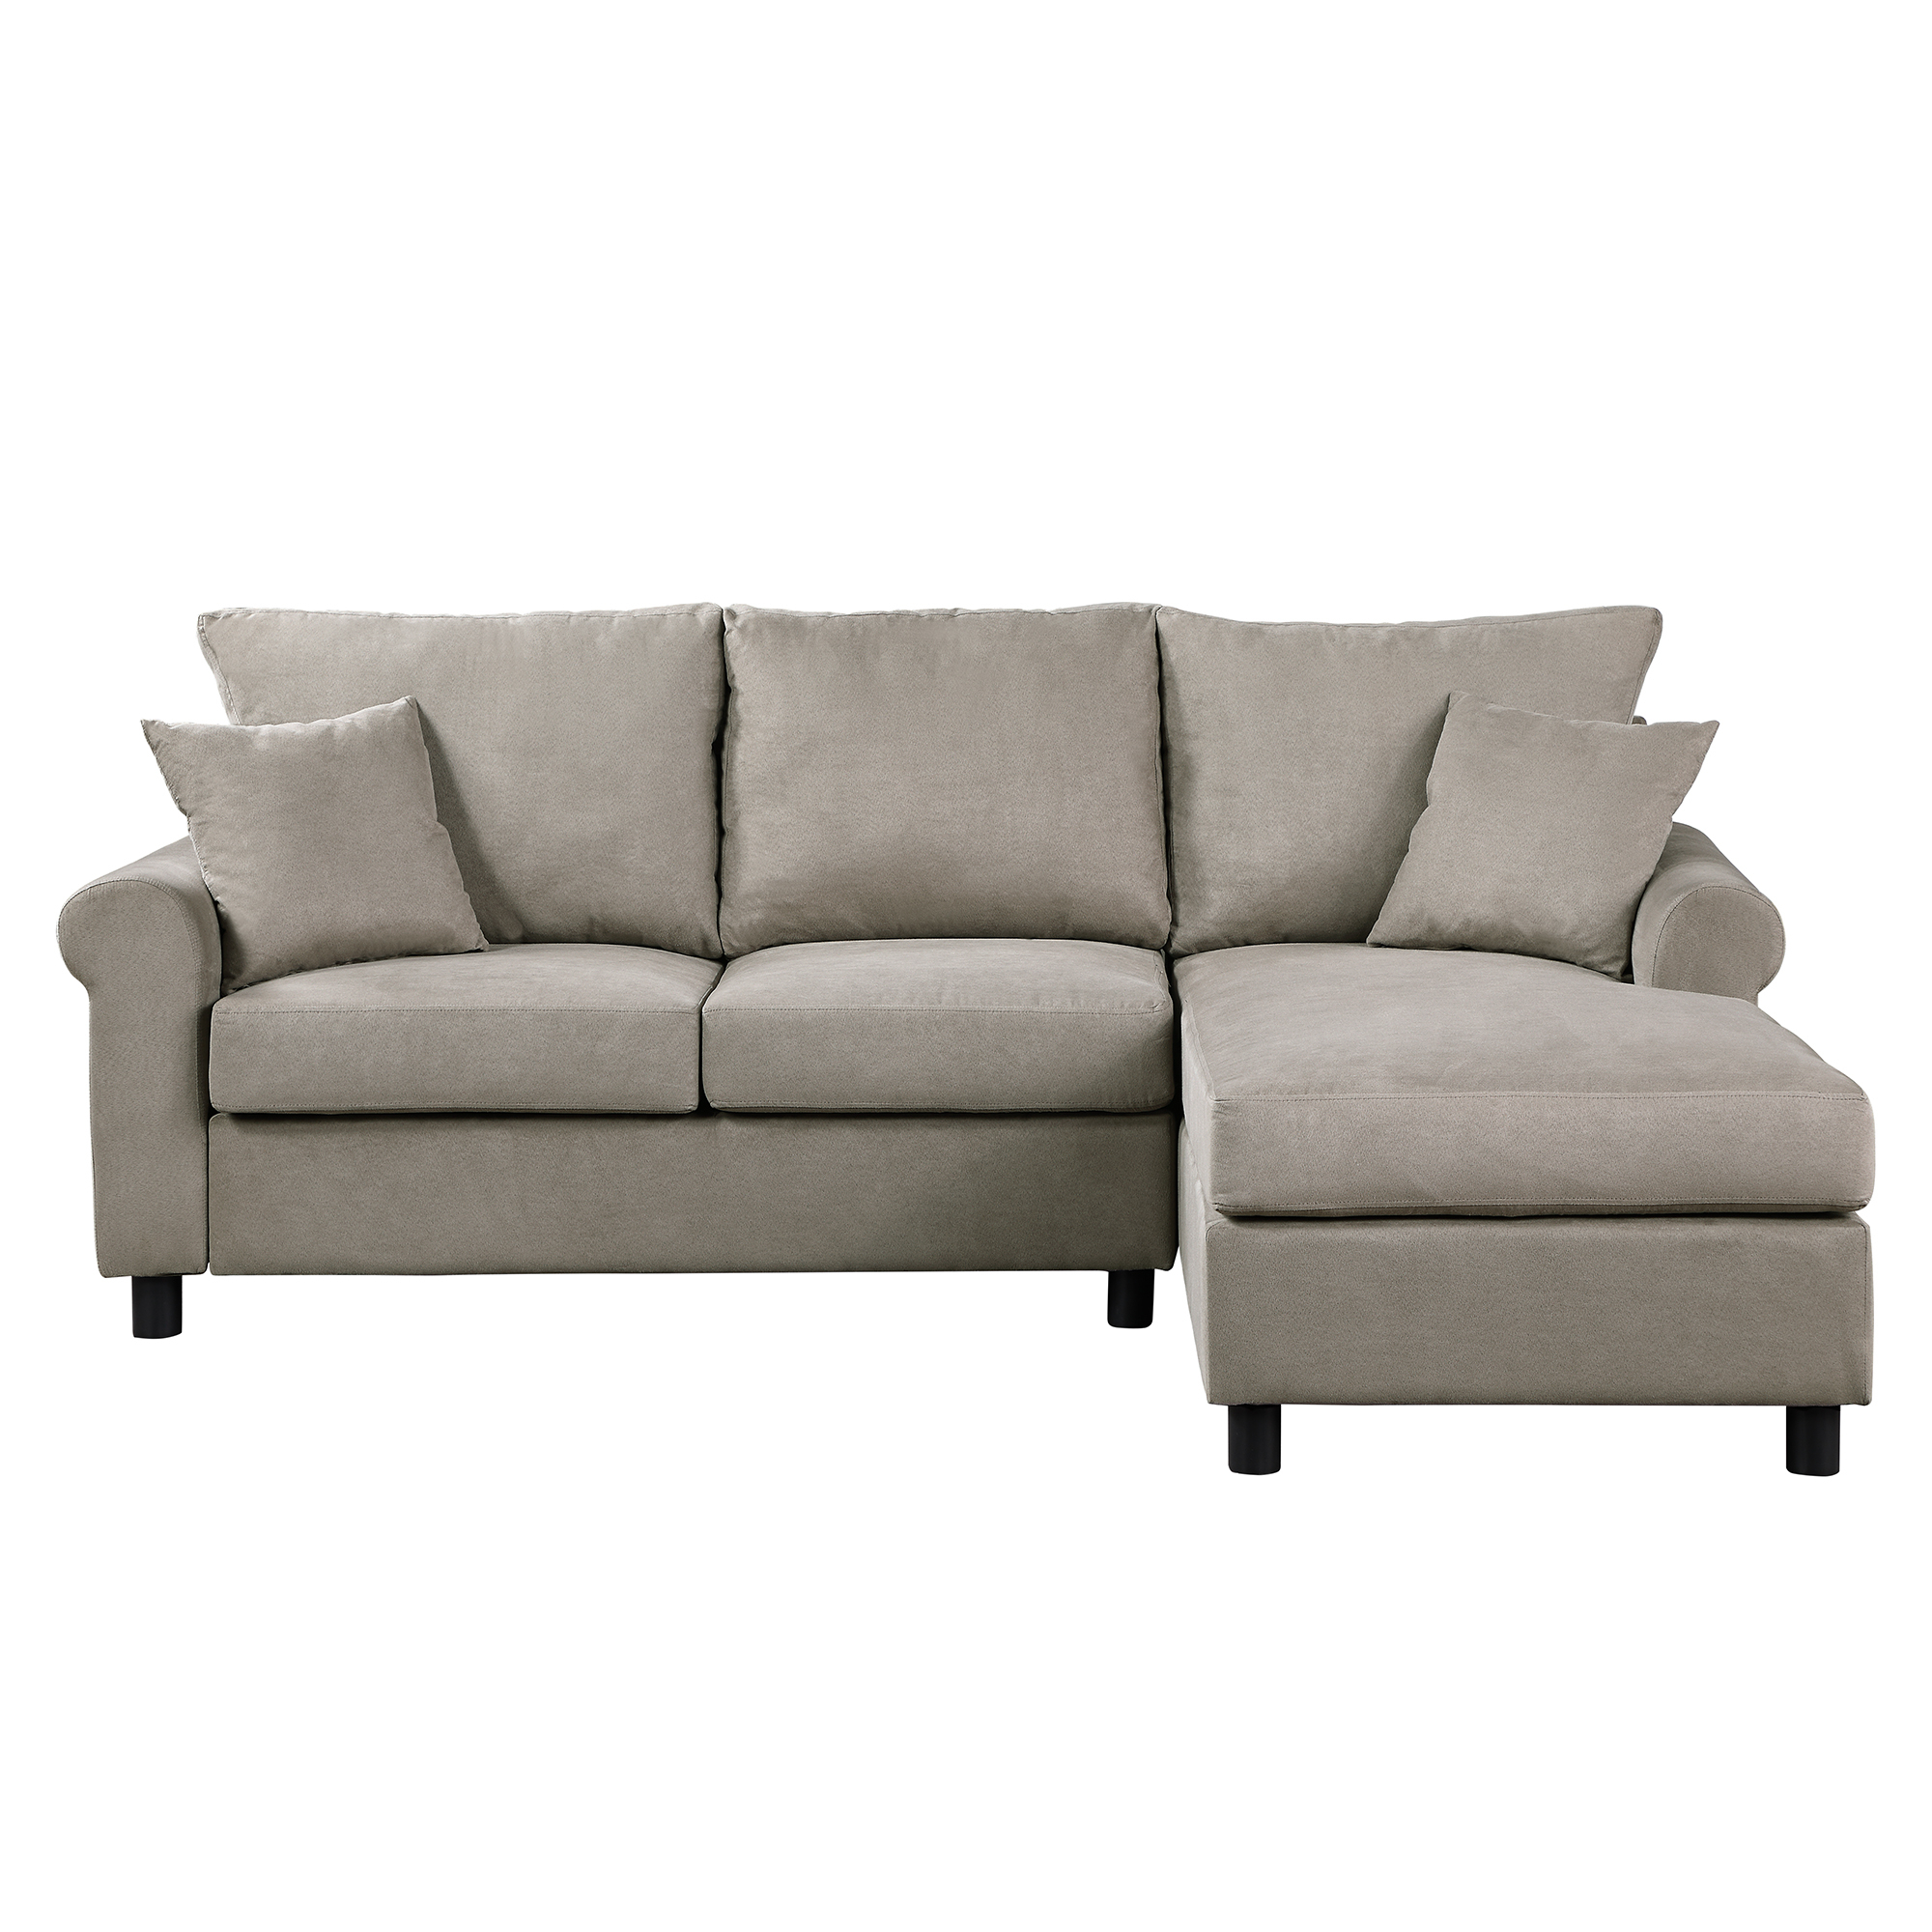 Favorite Sectional Sofa, Segmart 35'' X 85'' X 61'' Tufted With Regard To Verona Mid Century Reversible Sectional Sofas (View 8 of 20)